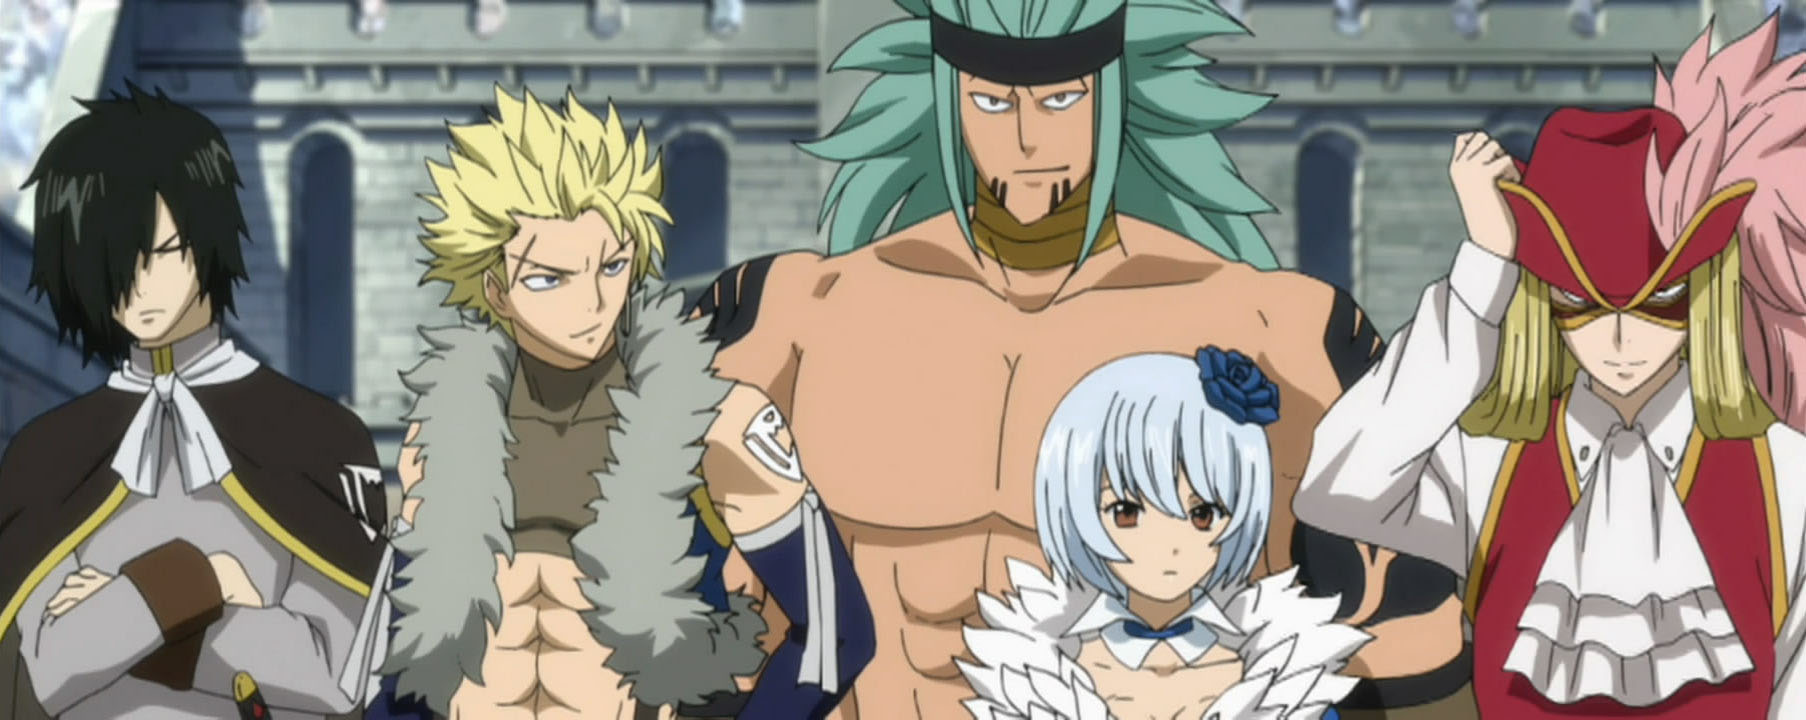 Sabertooth (Fairy Tail)